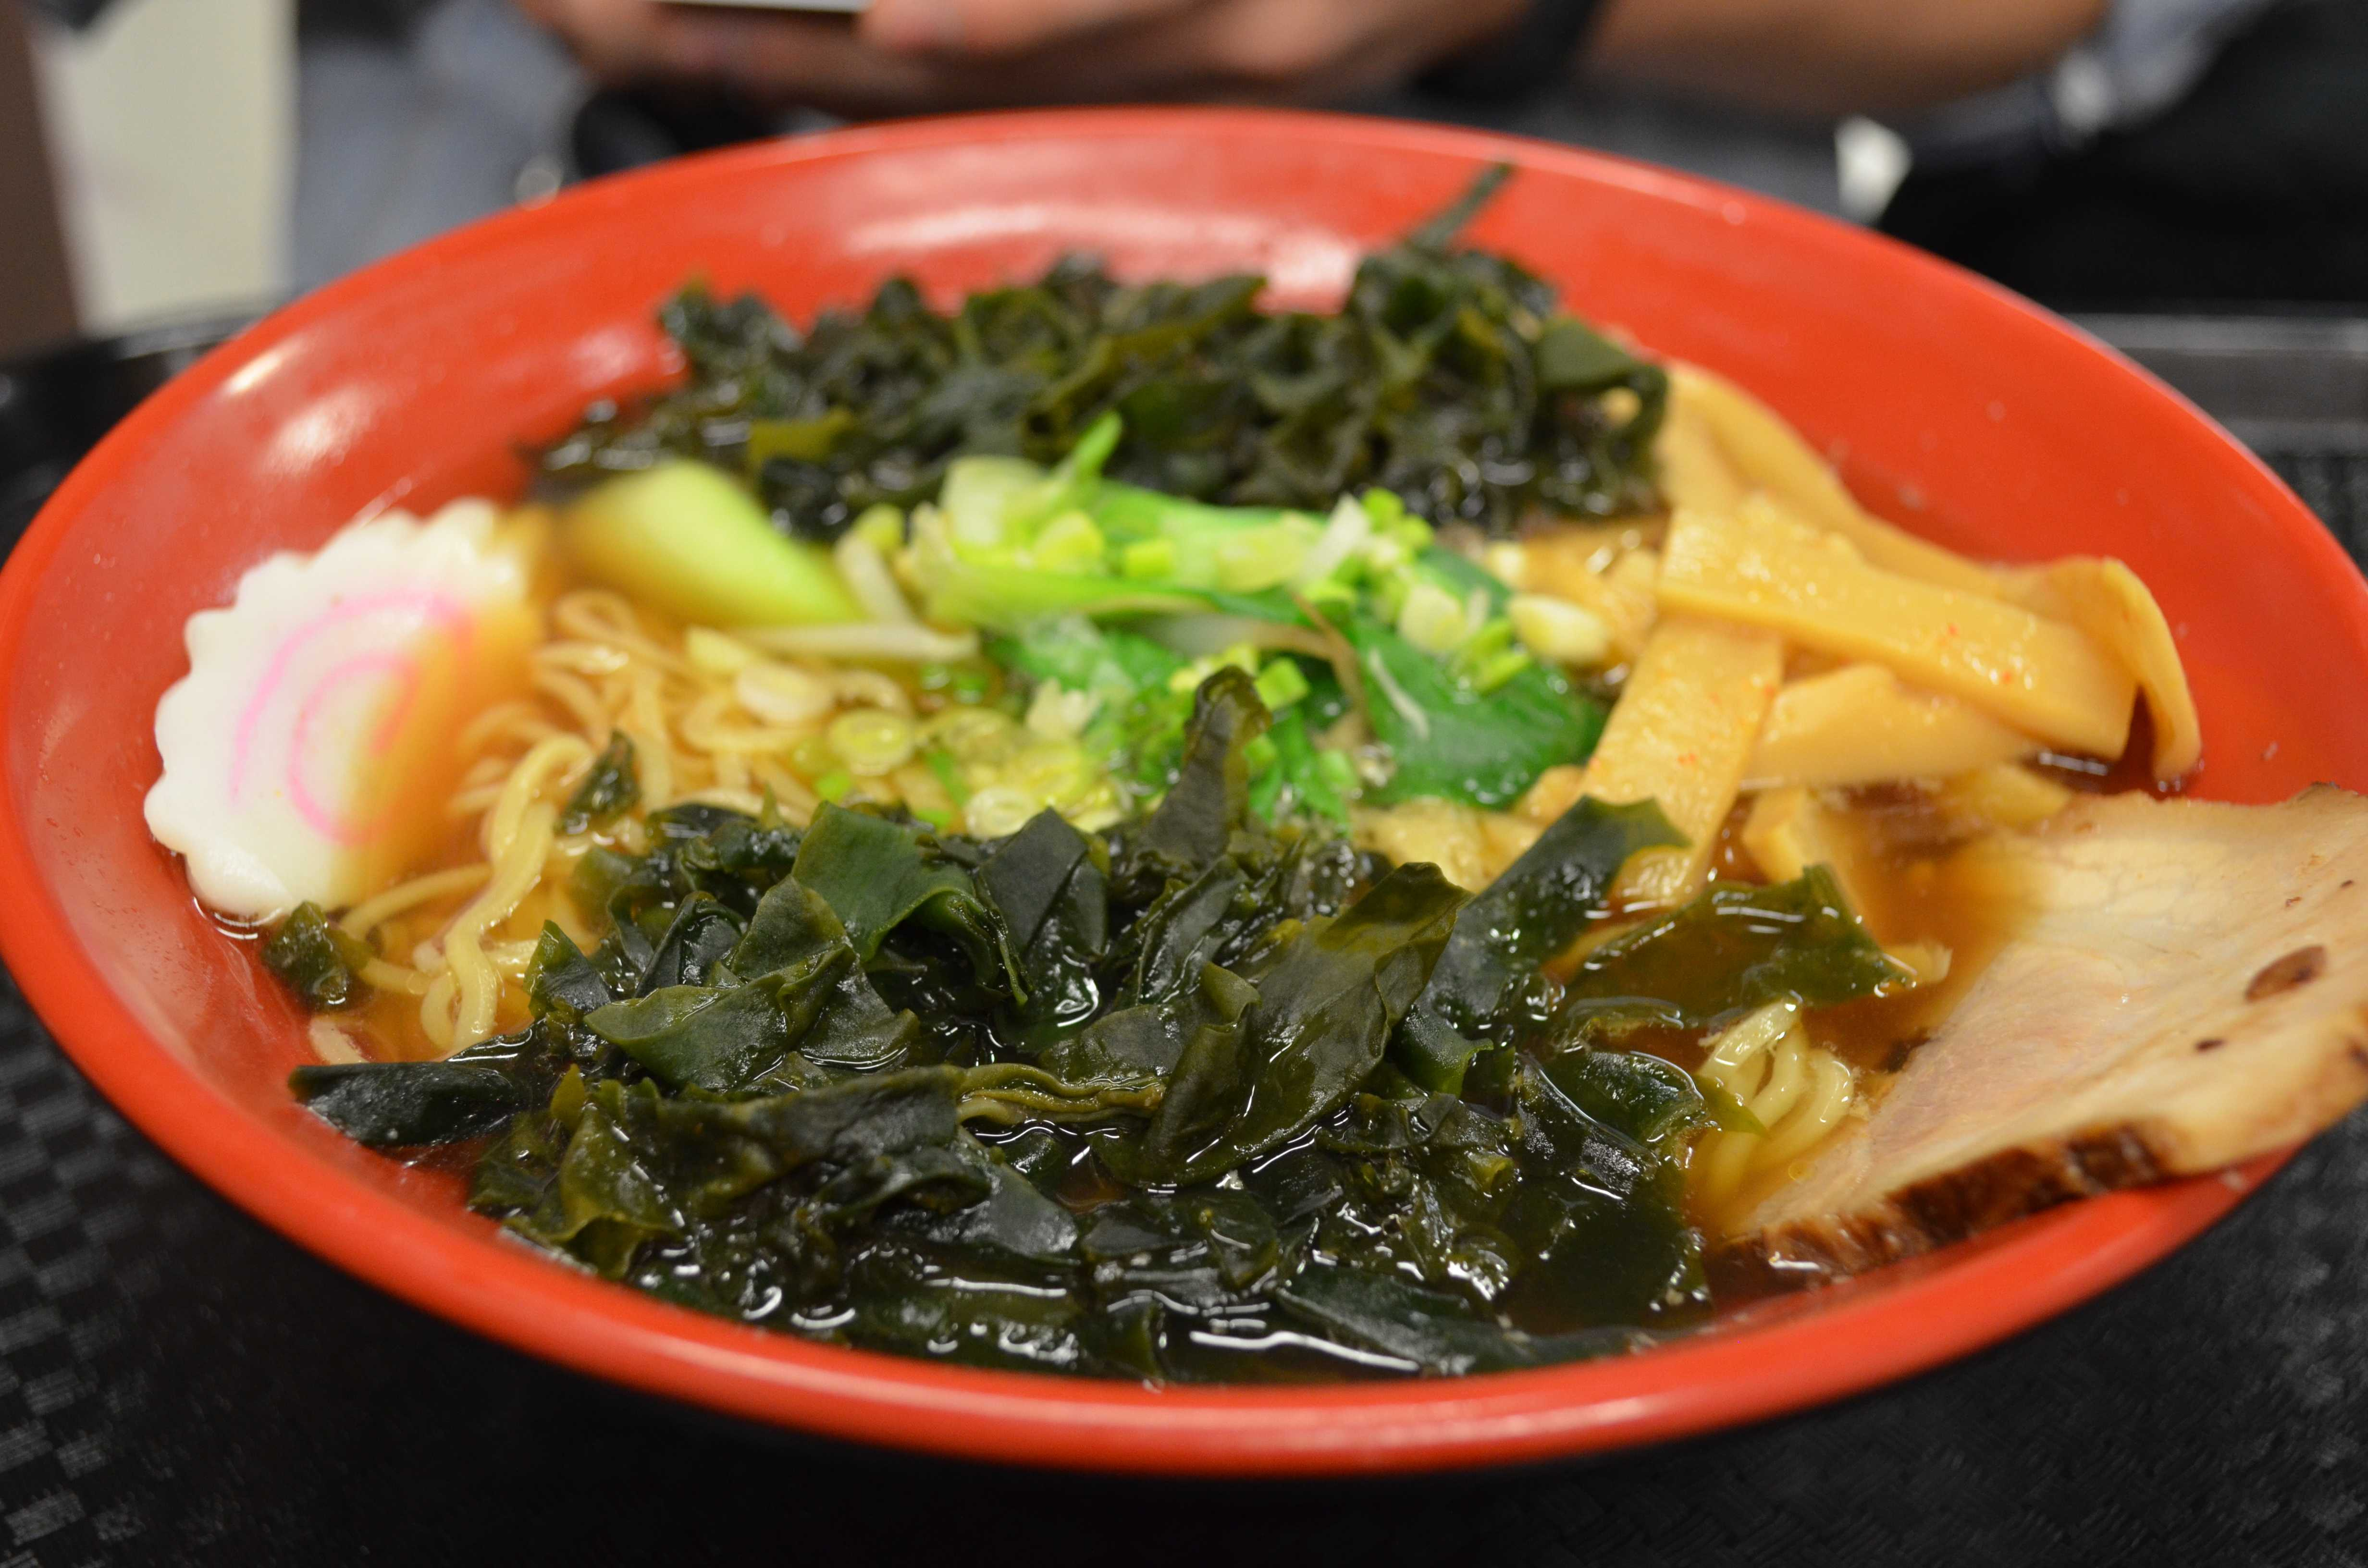 A trip to United Noodles: The IMAX